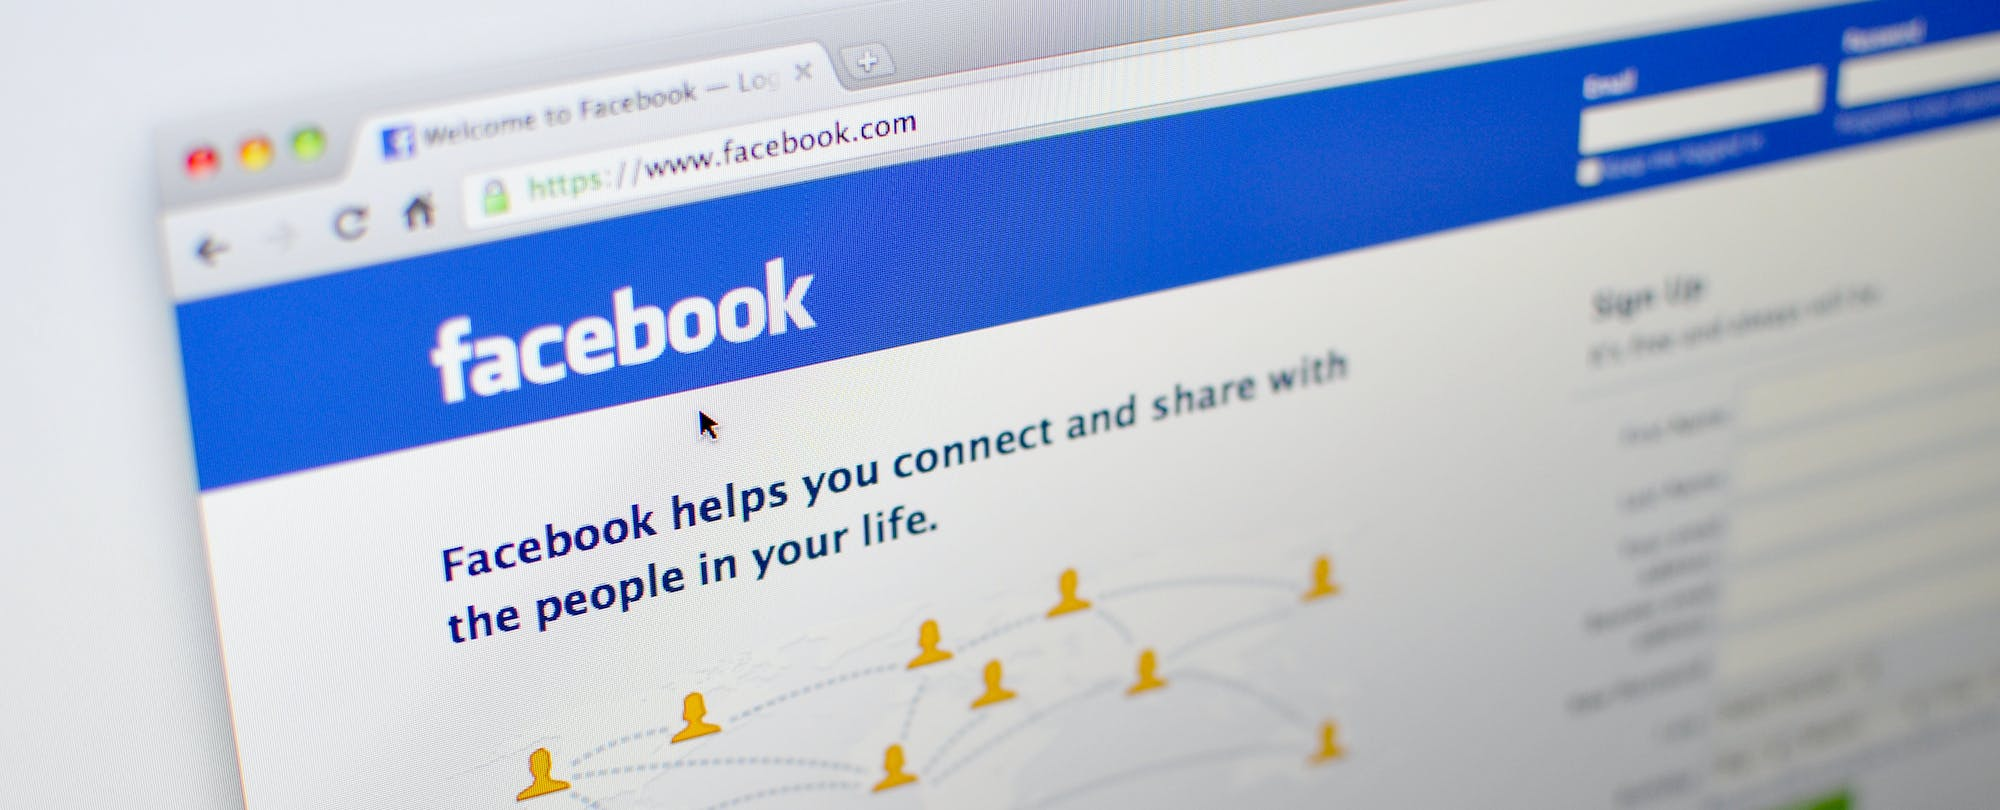 Facebook Expands Digital Training Initiative with College Partnerships in Chicago